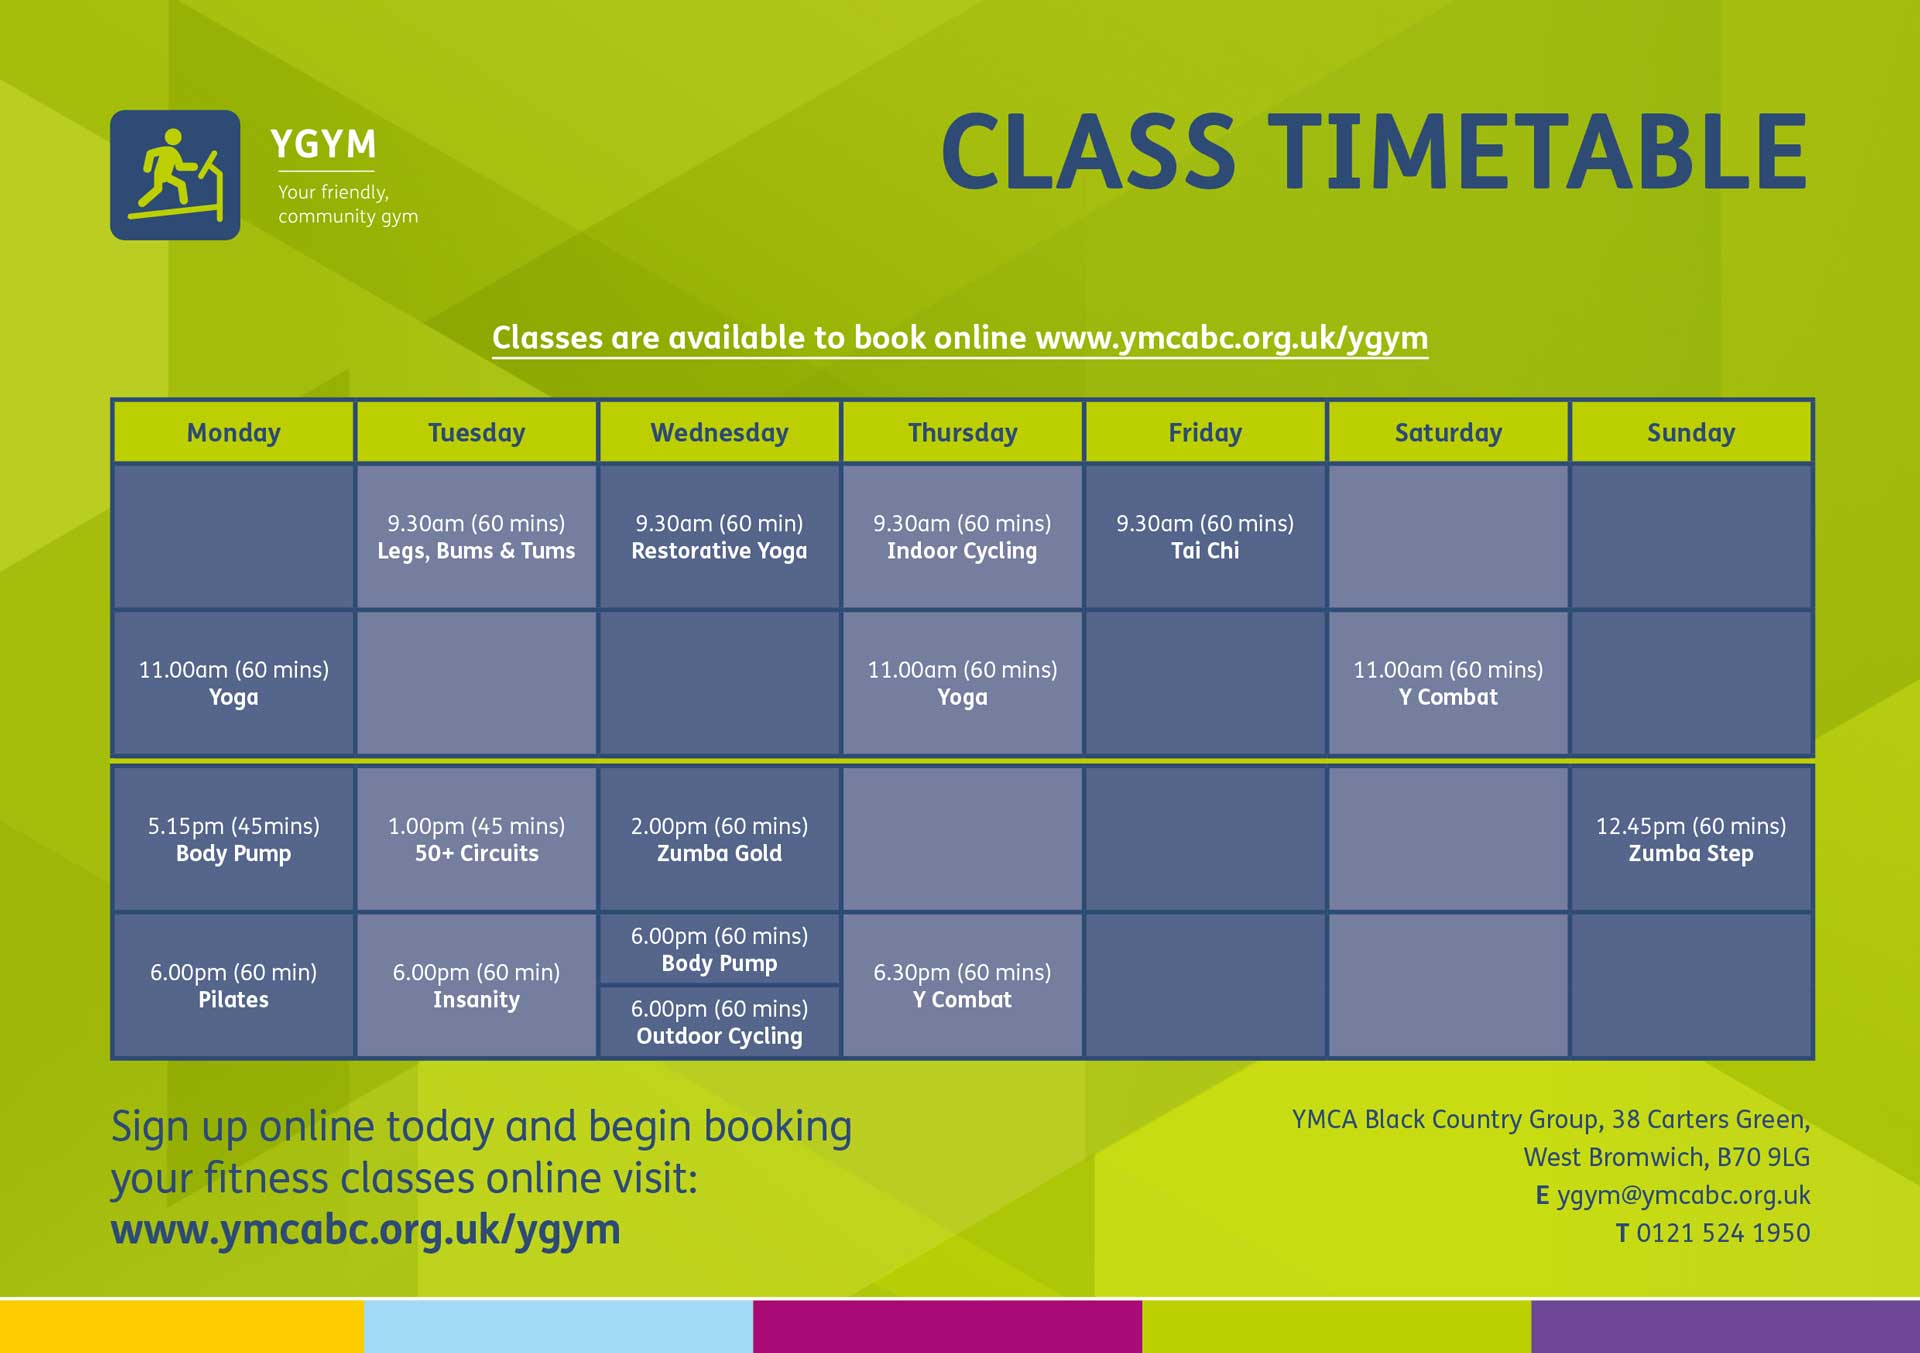 YGym Class Timetable